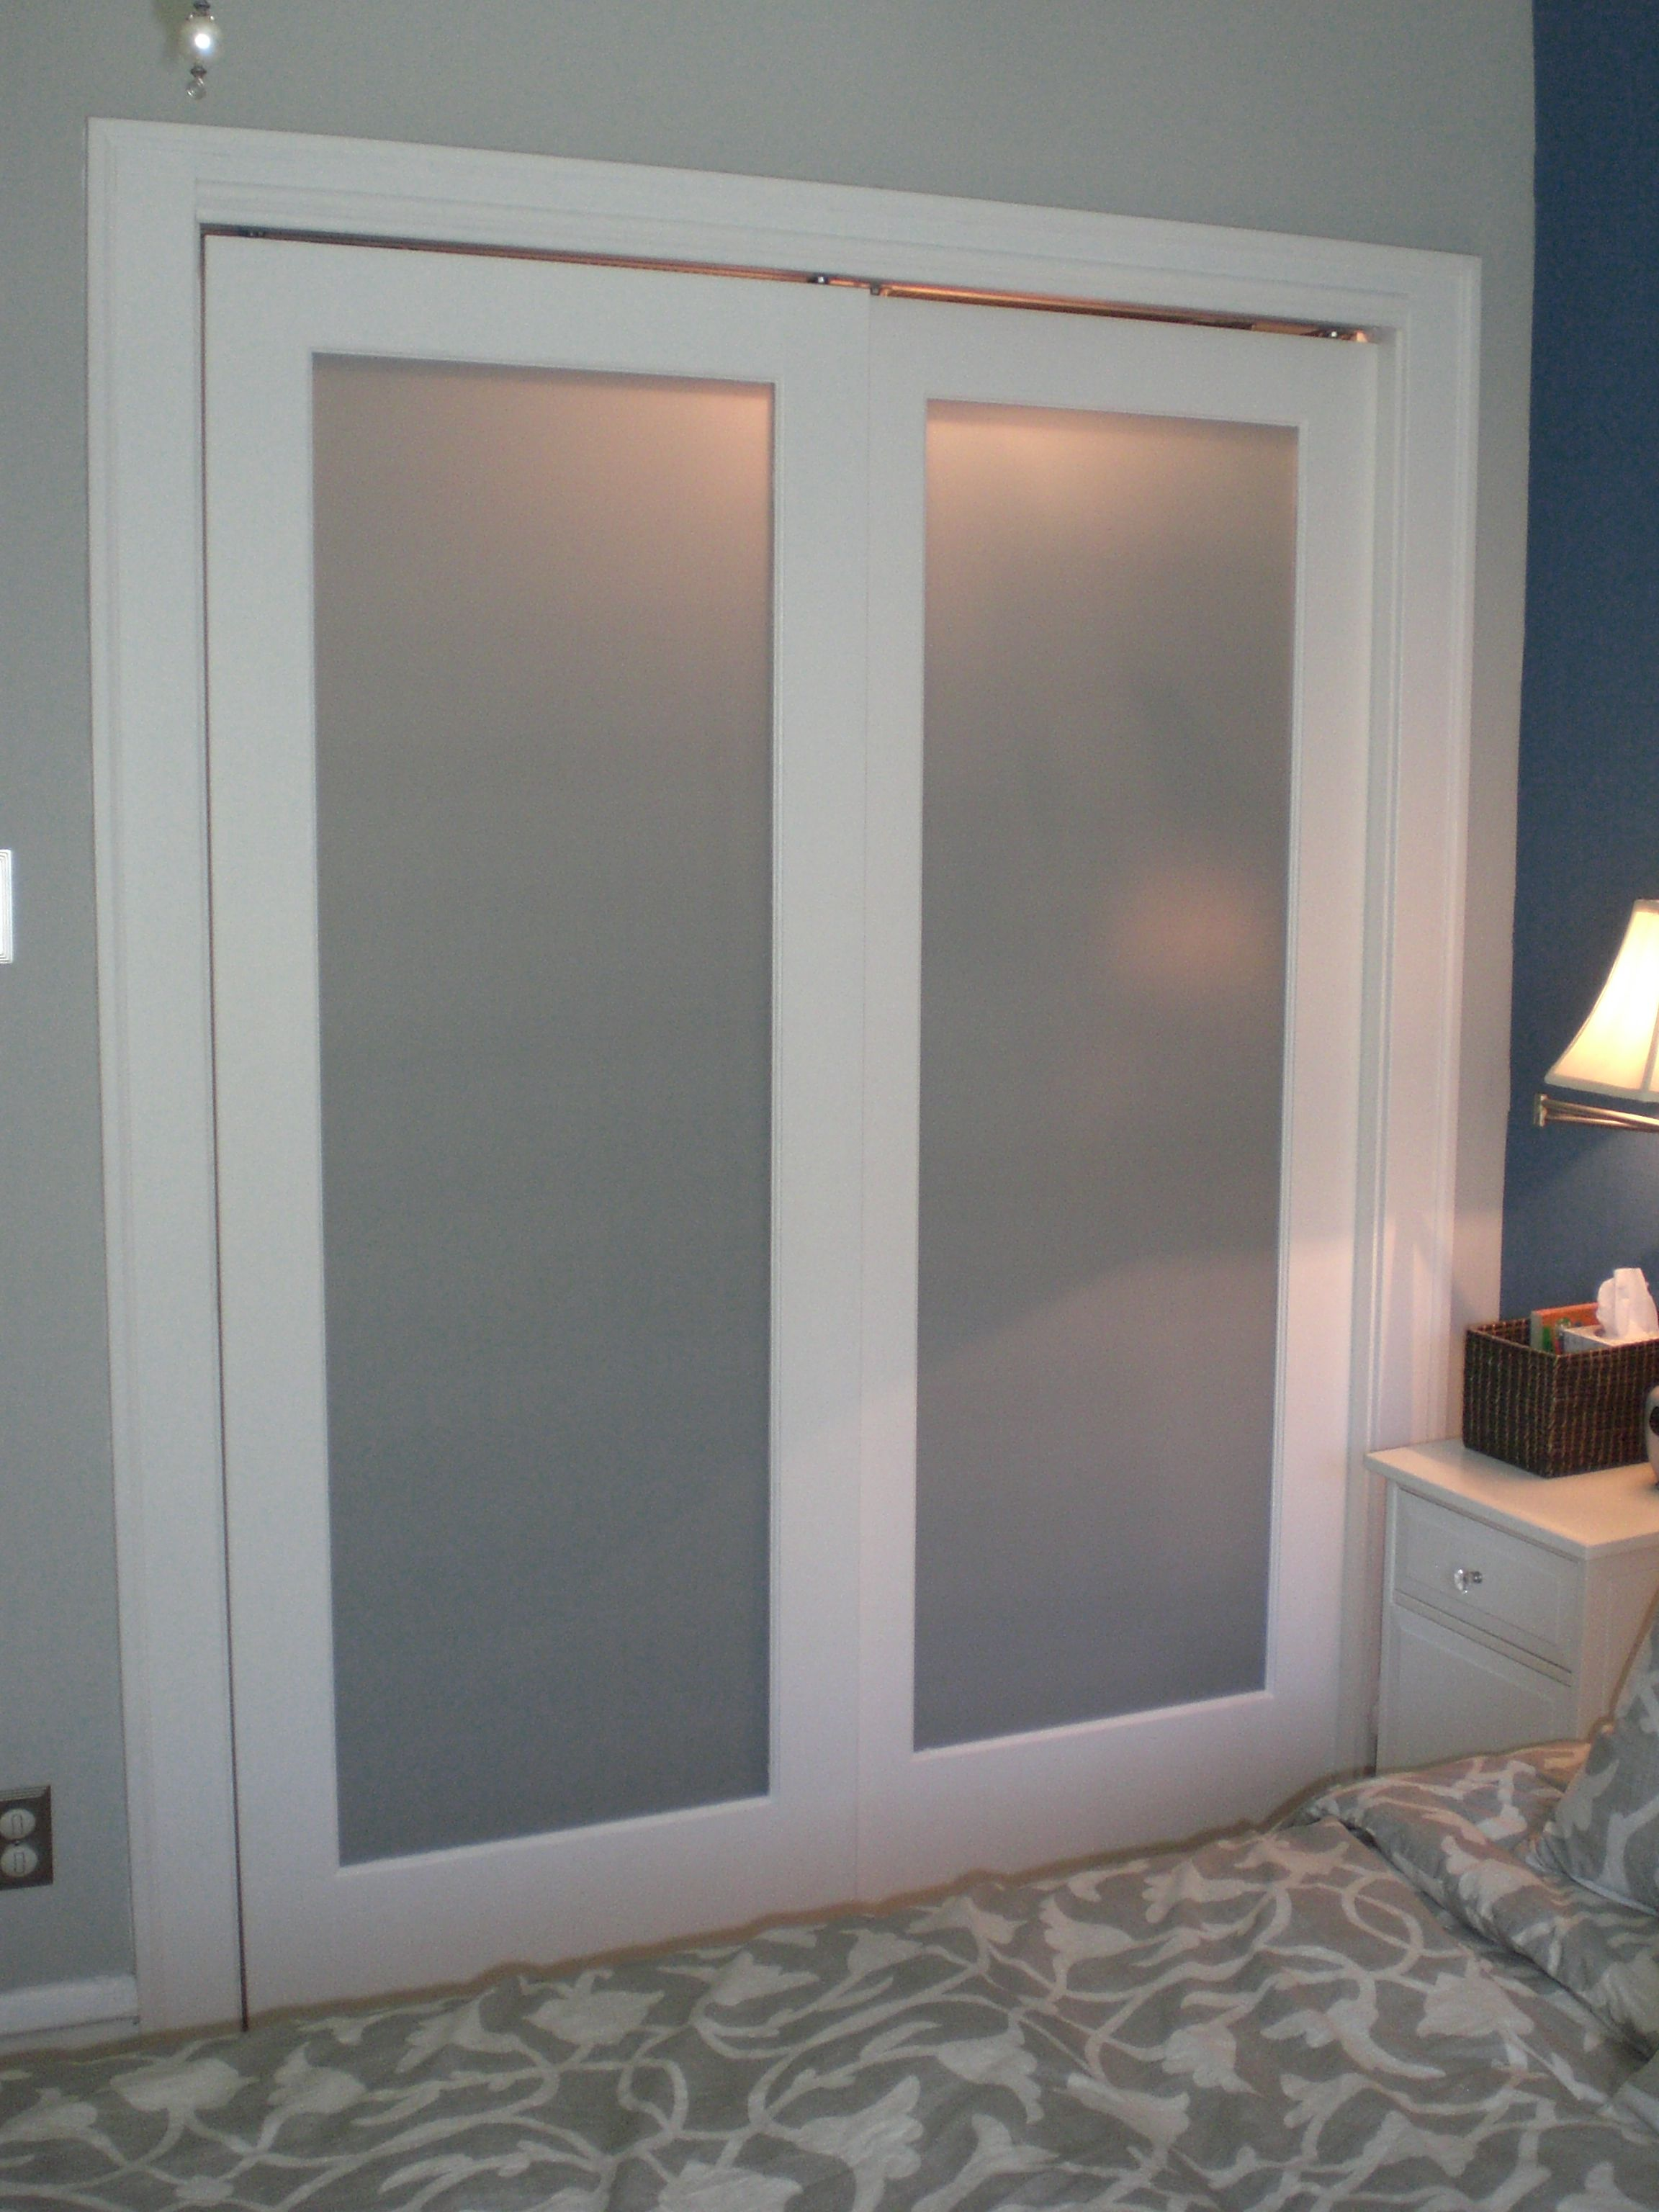 Master bedroom closet re do closet doors sliding closet doors bedroom closets sliding frosted glass closet doors eventelaan Gallery